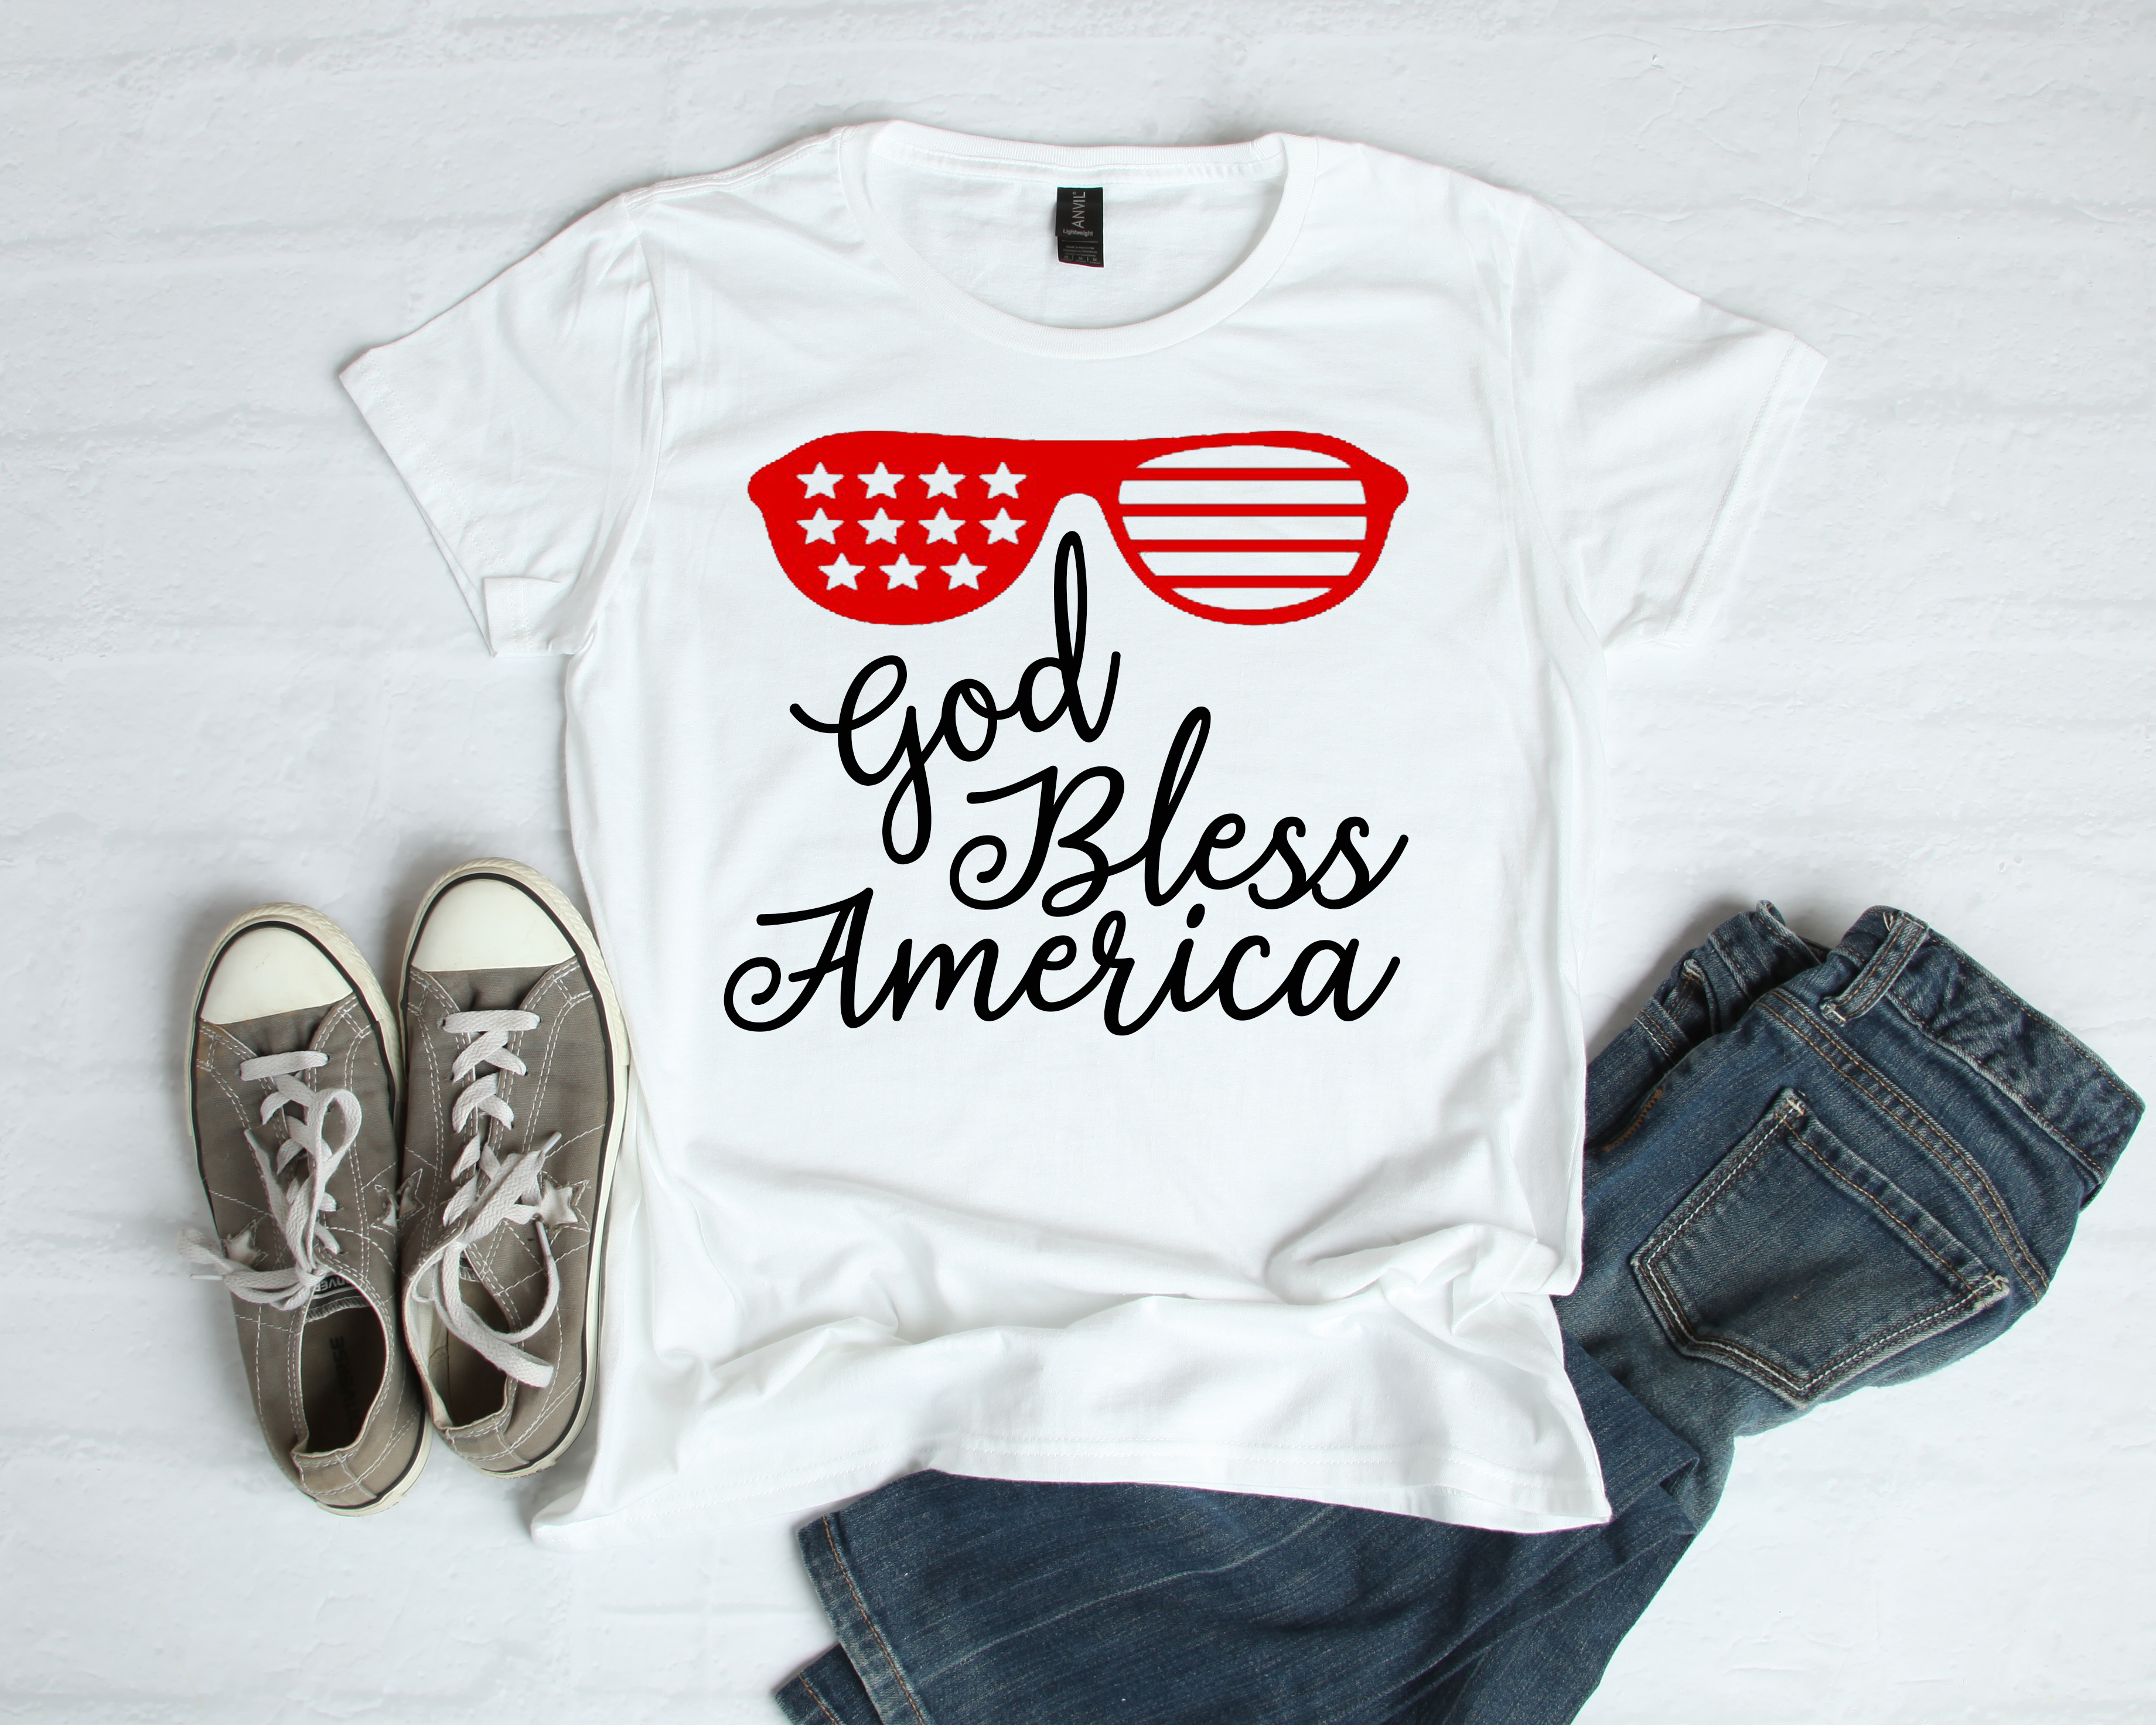 God Bless America (July 4th Edition)) 10045